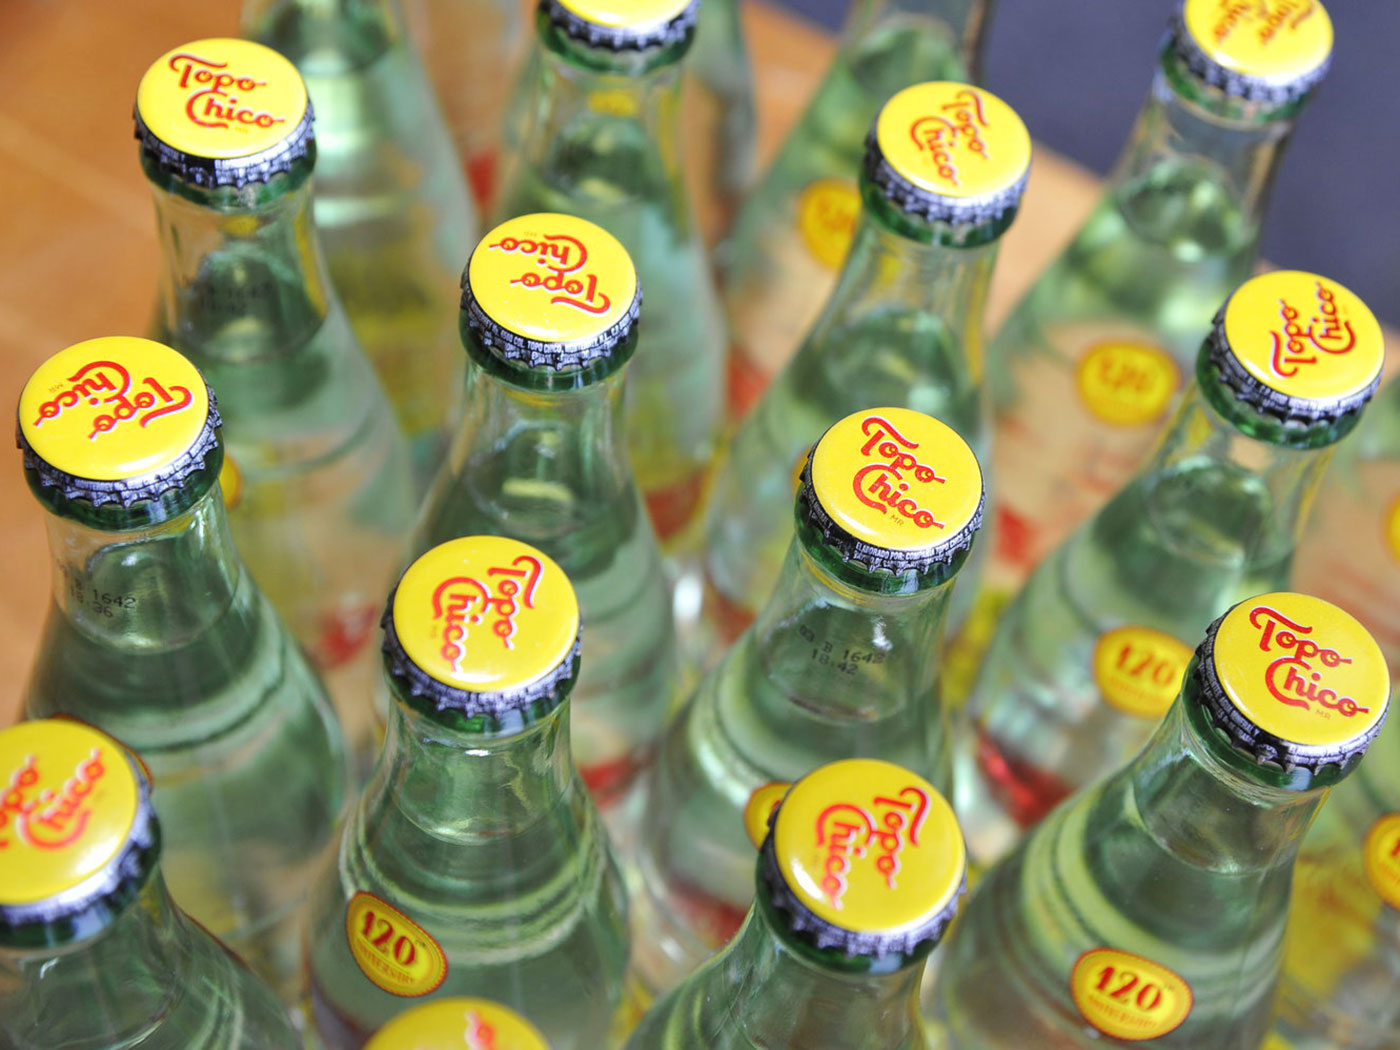 topo chico acquired by coca cola